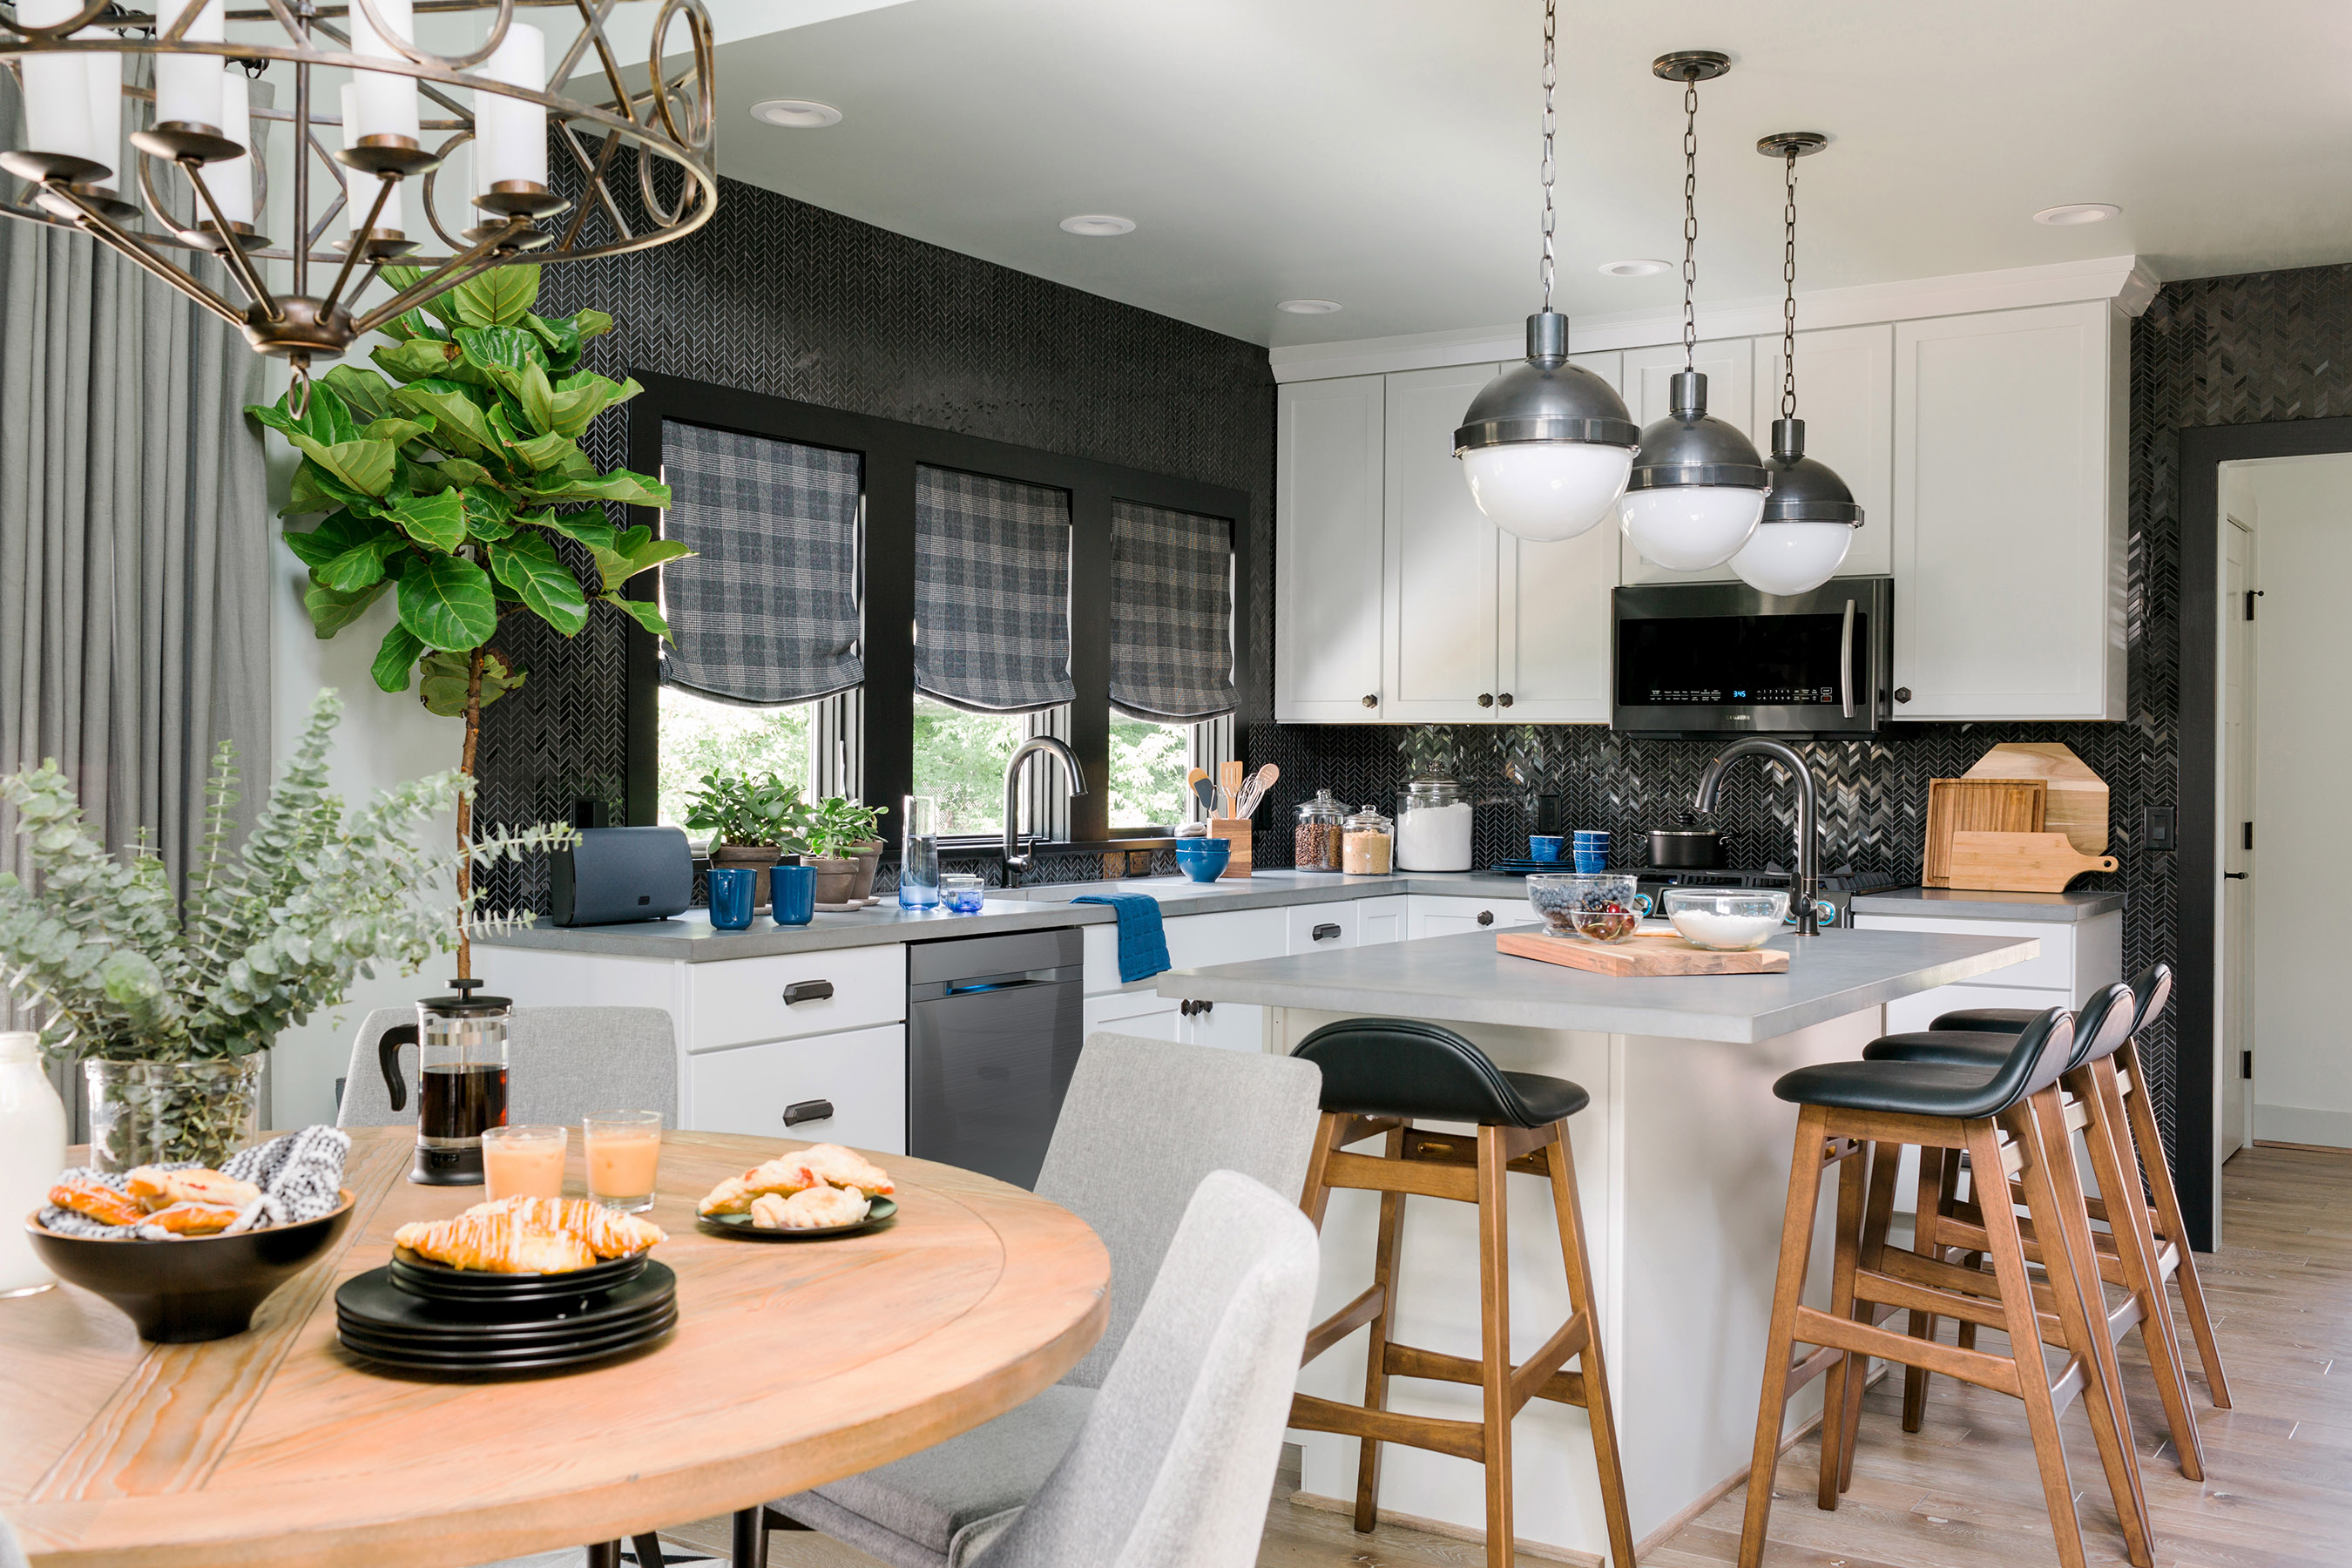 The kitchen of the HGTV Urban Oasis 2016 features a bold black-and white color scheme, a suite of high-tech appliances and a trio of pendant lights that add a modern, industrial feel.